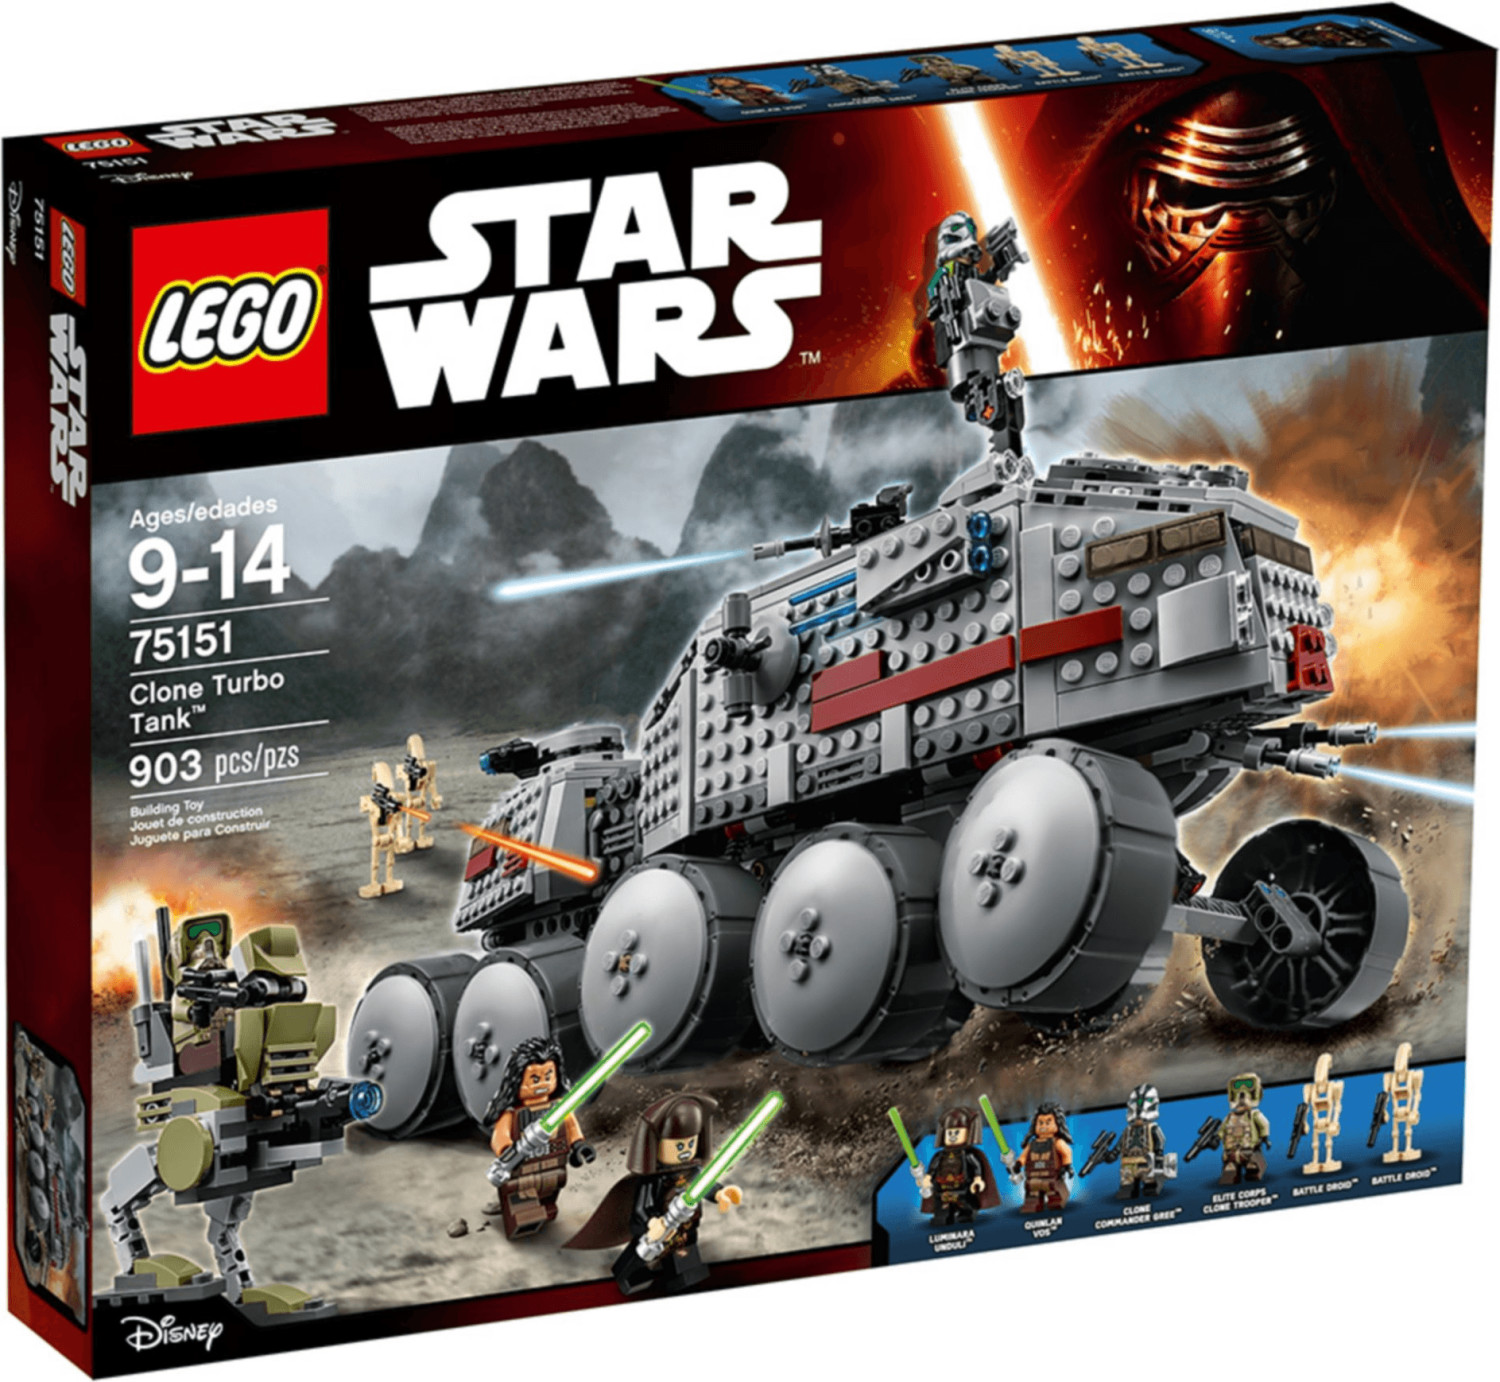 LEGO Star Wars - Clone Turbo Tank (75151)